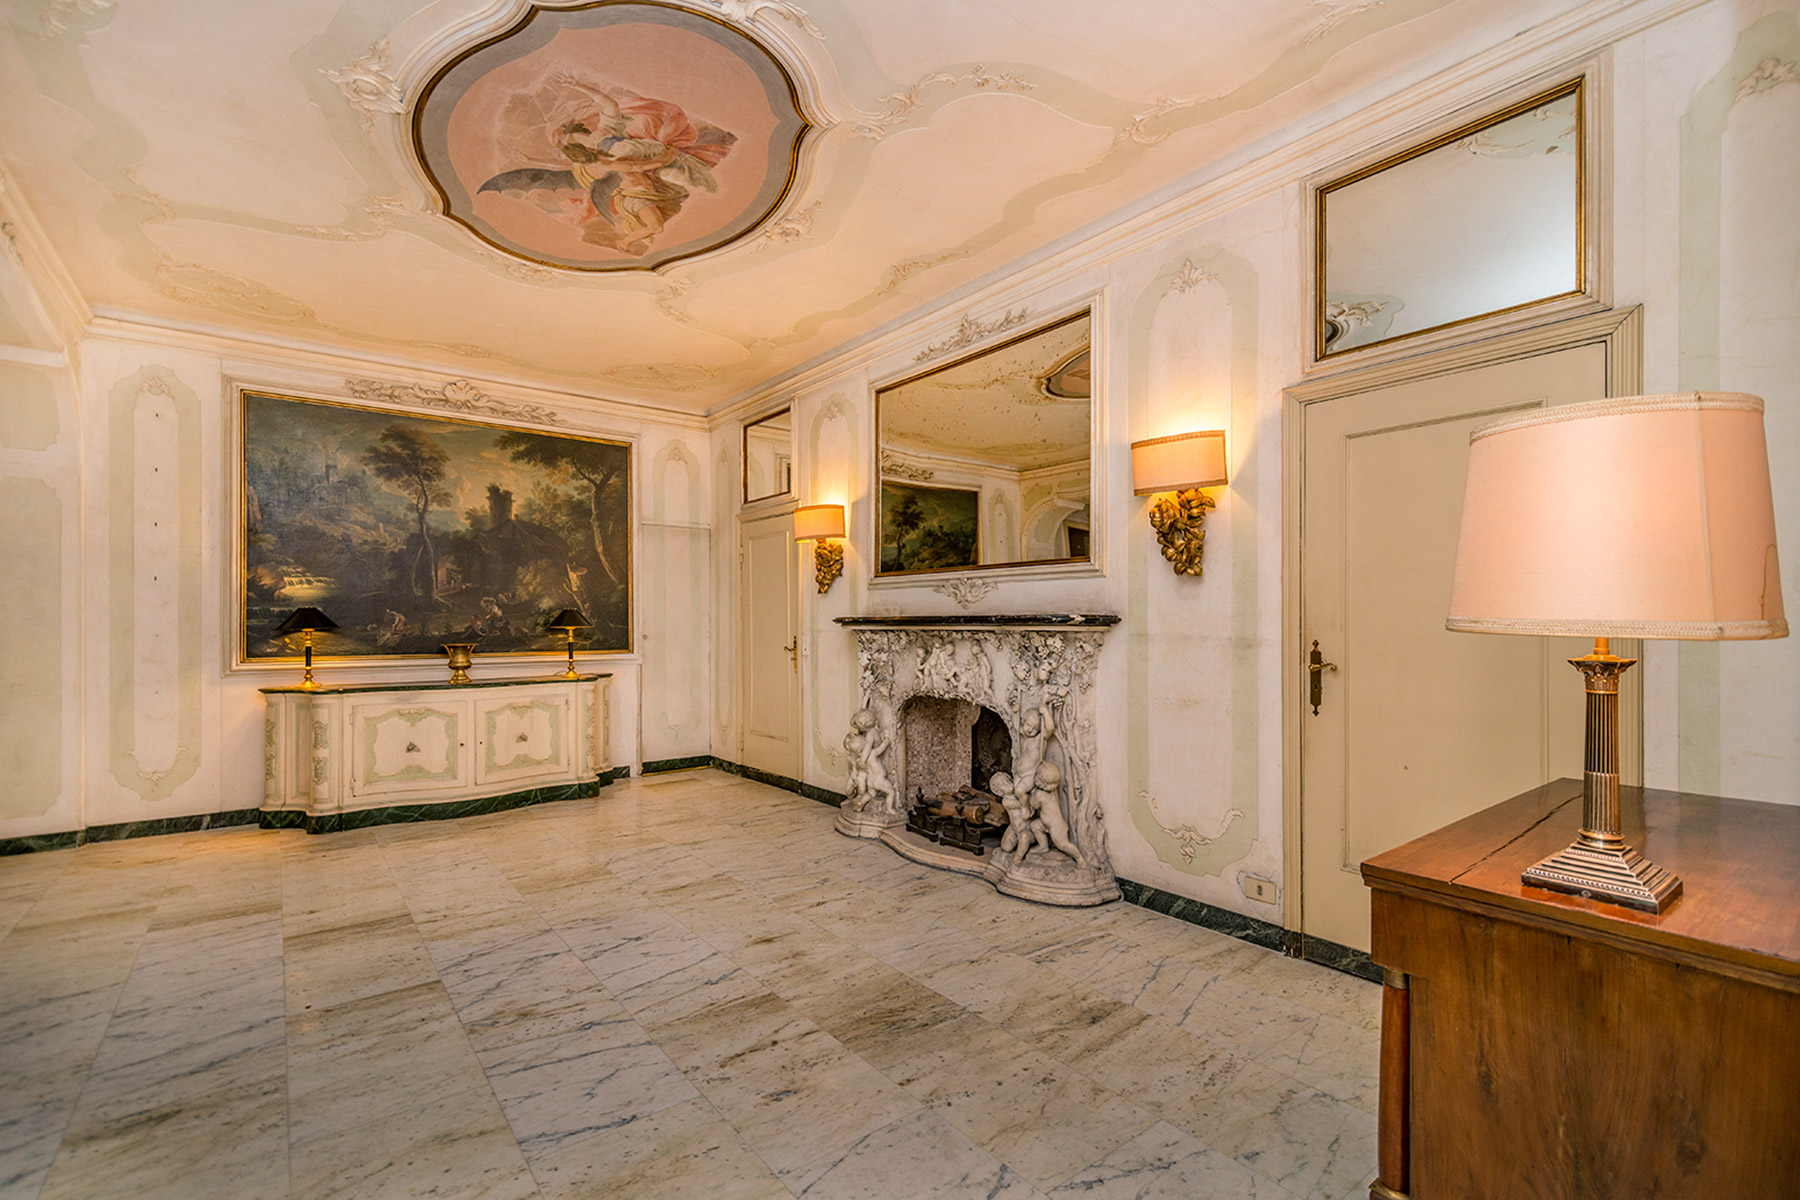 Additional photo for property listing at Elegant property with antique finishes Piazzetta Brera Milano, Milan 20100 Italie